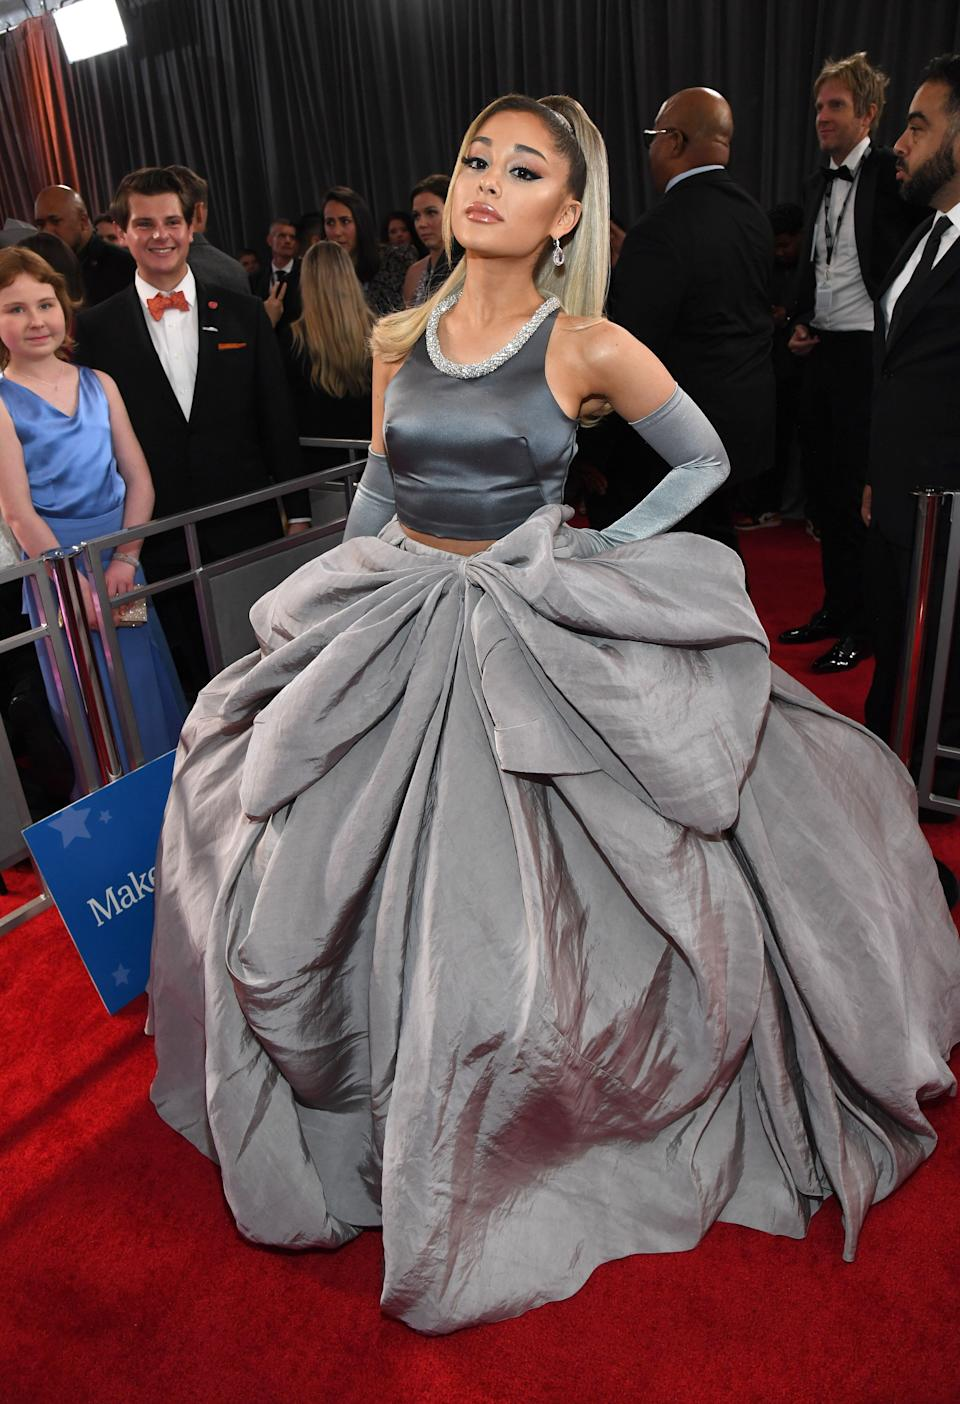 We couldn't tell you why, but Ariana Grande changed into a second, gigantic gray dress and walked the red carpet ... again.